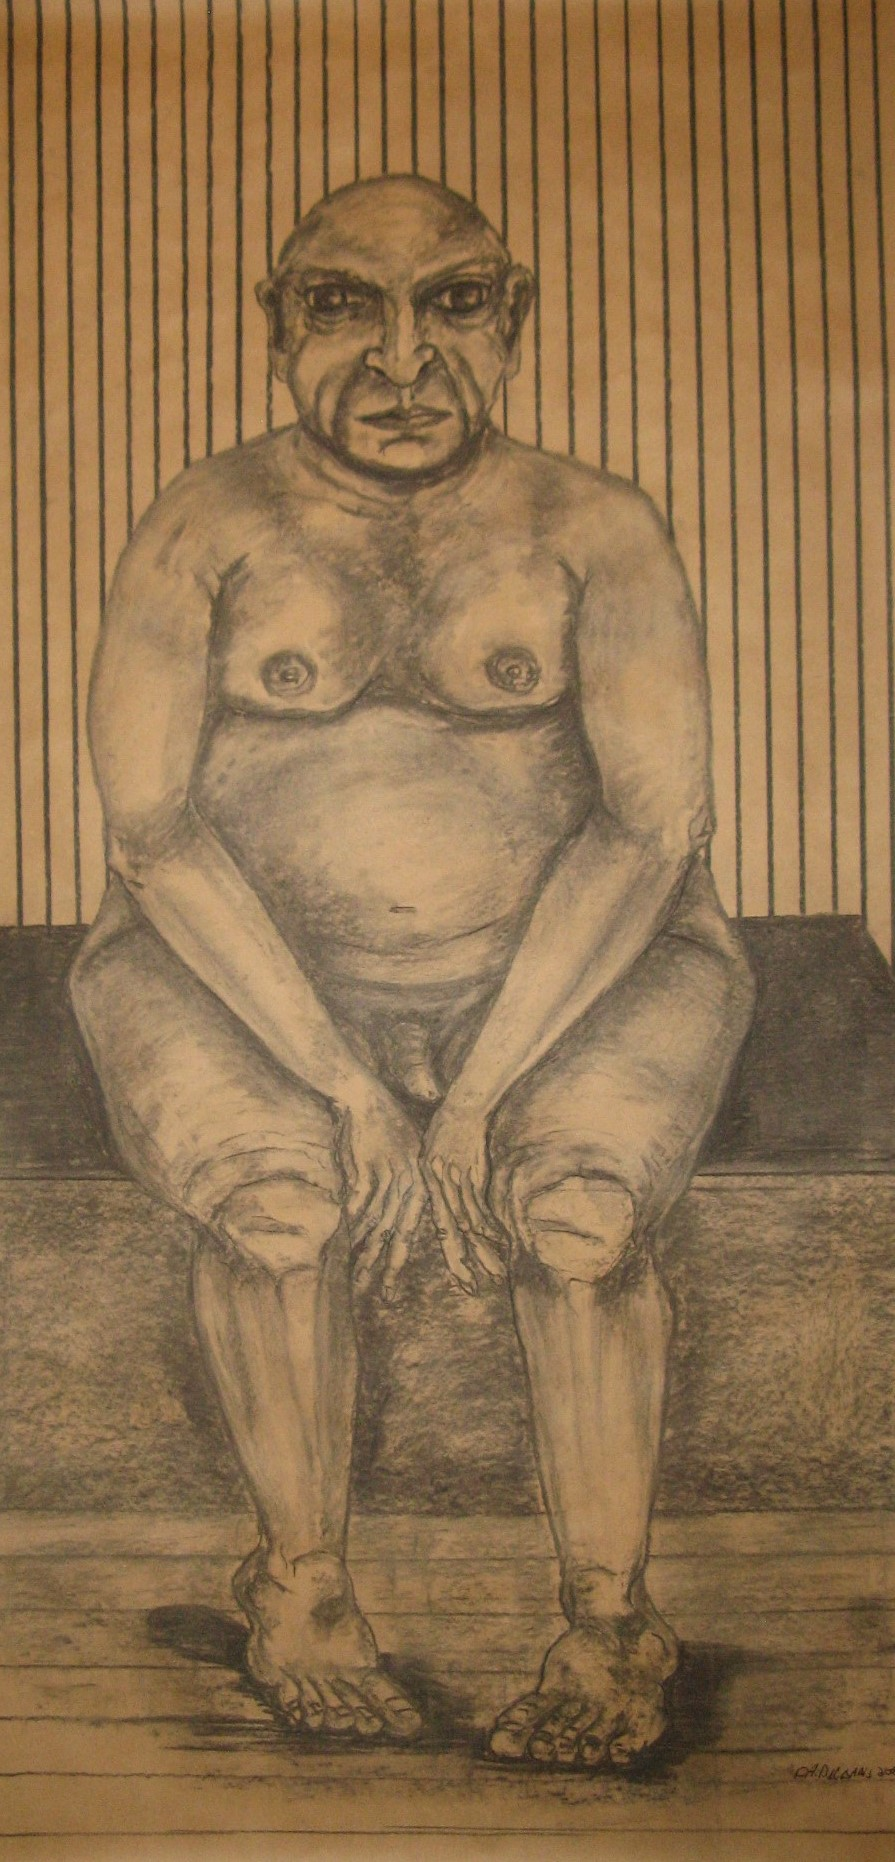 Sitting nude man